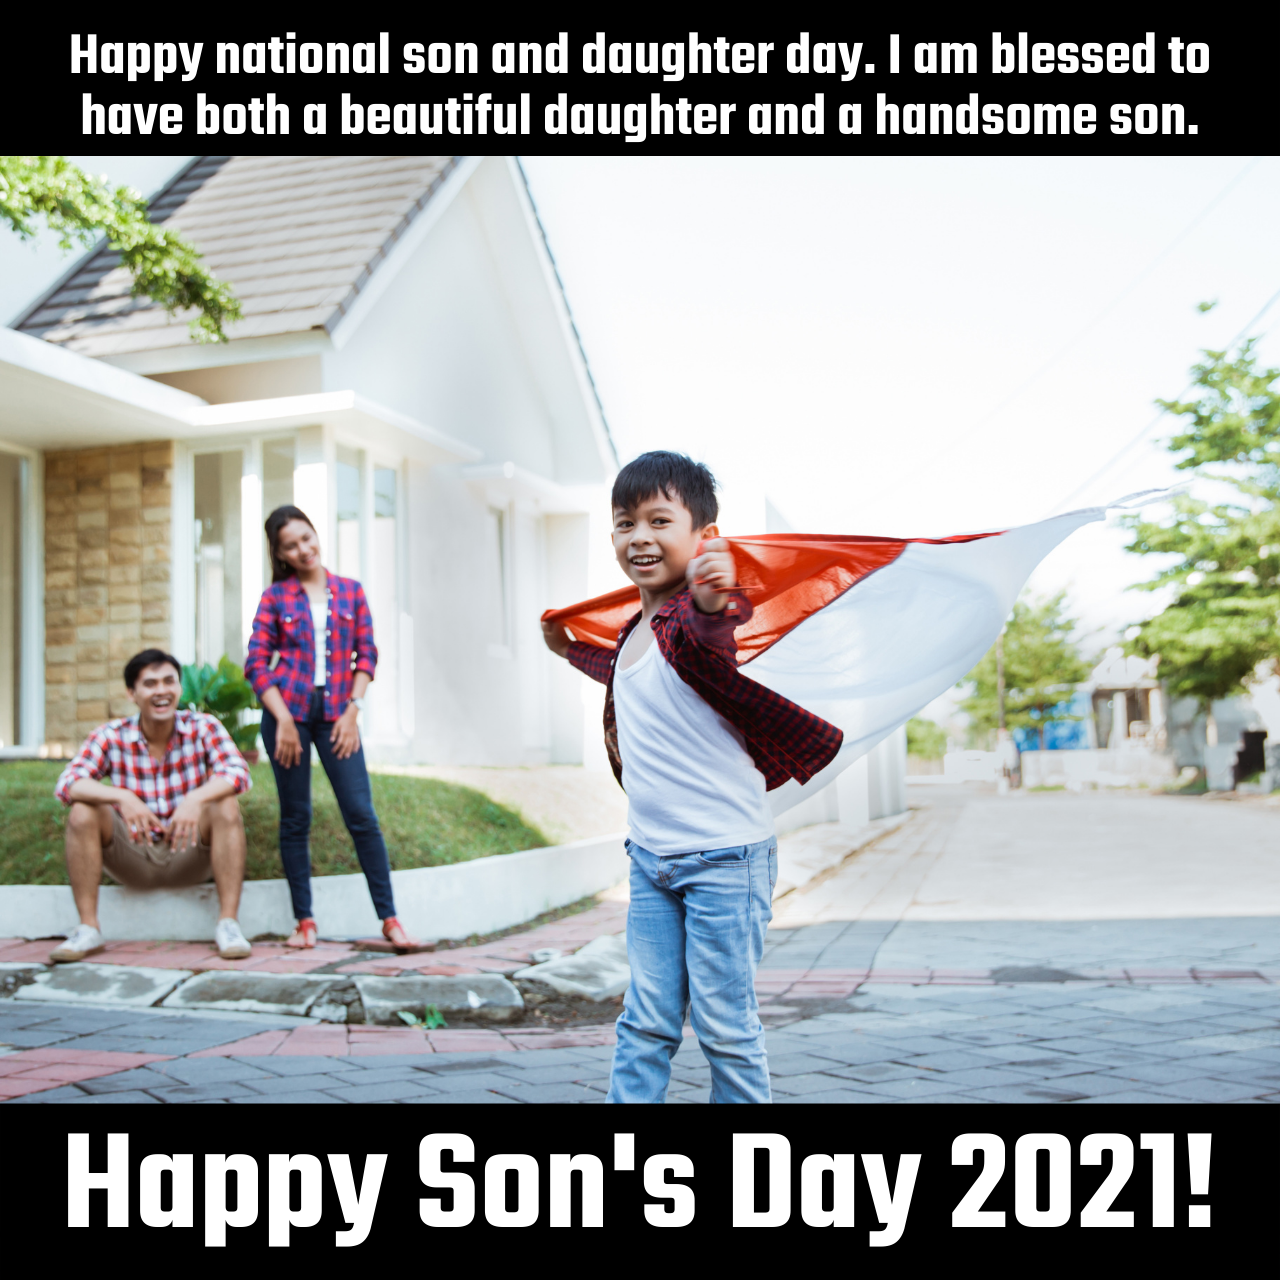 National Sons Day (US) 2021 Sayings, HD Images, Meme, Captions, Stickers, Quotes, and Images to share